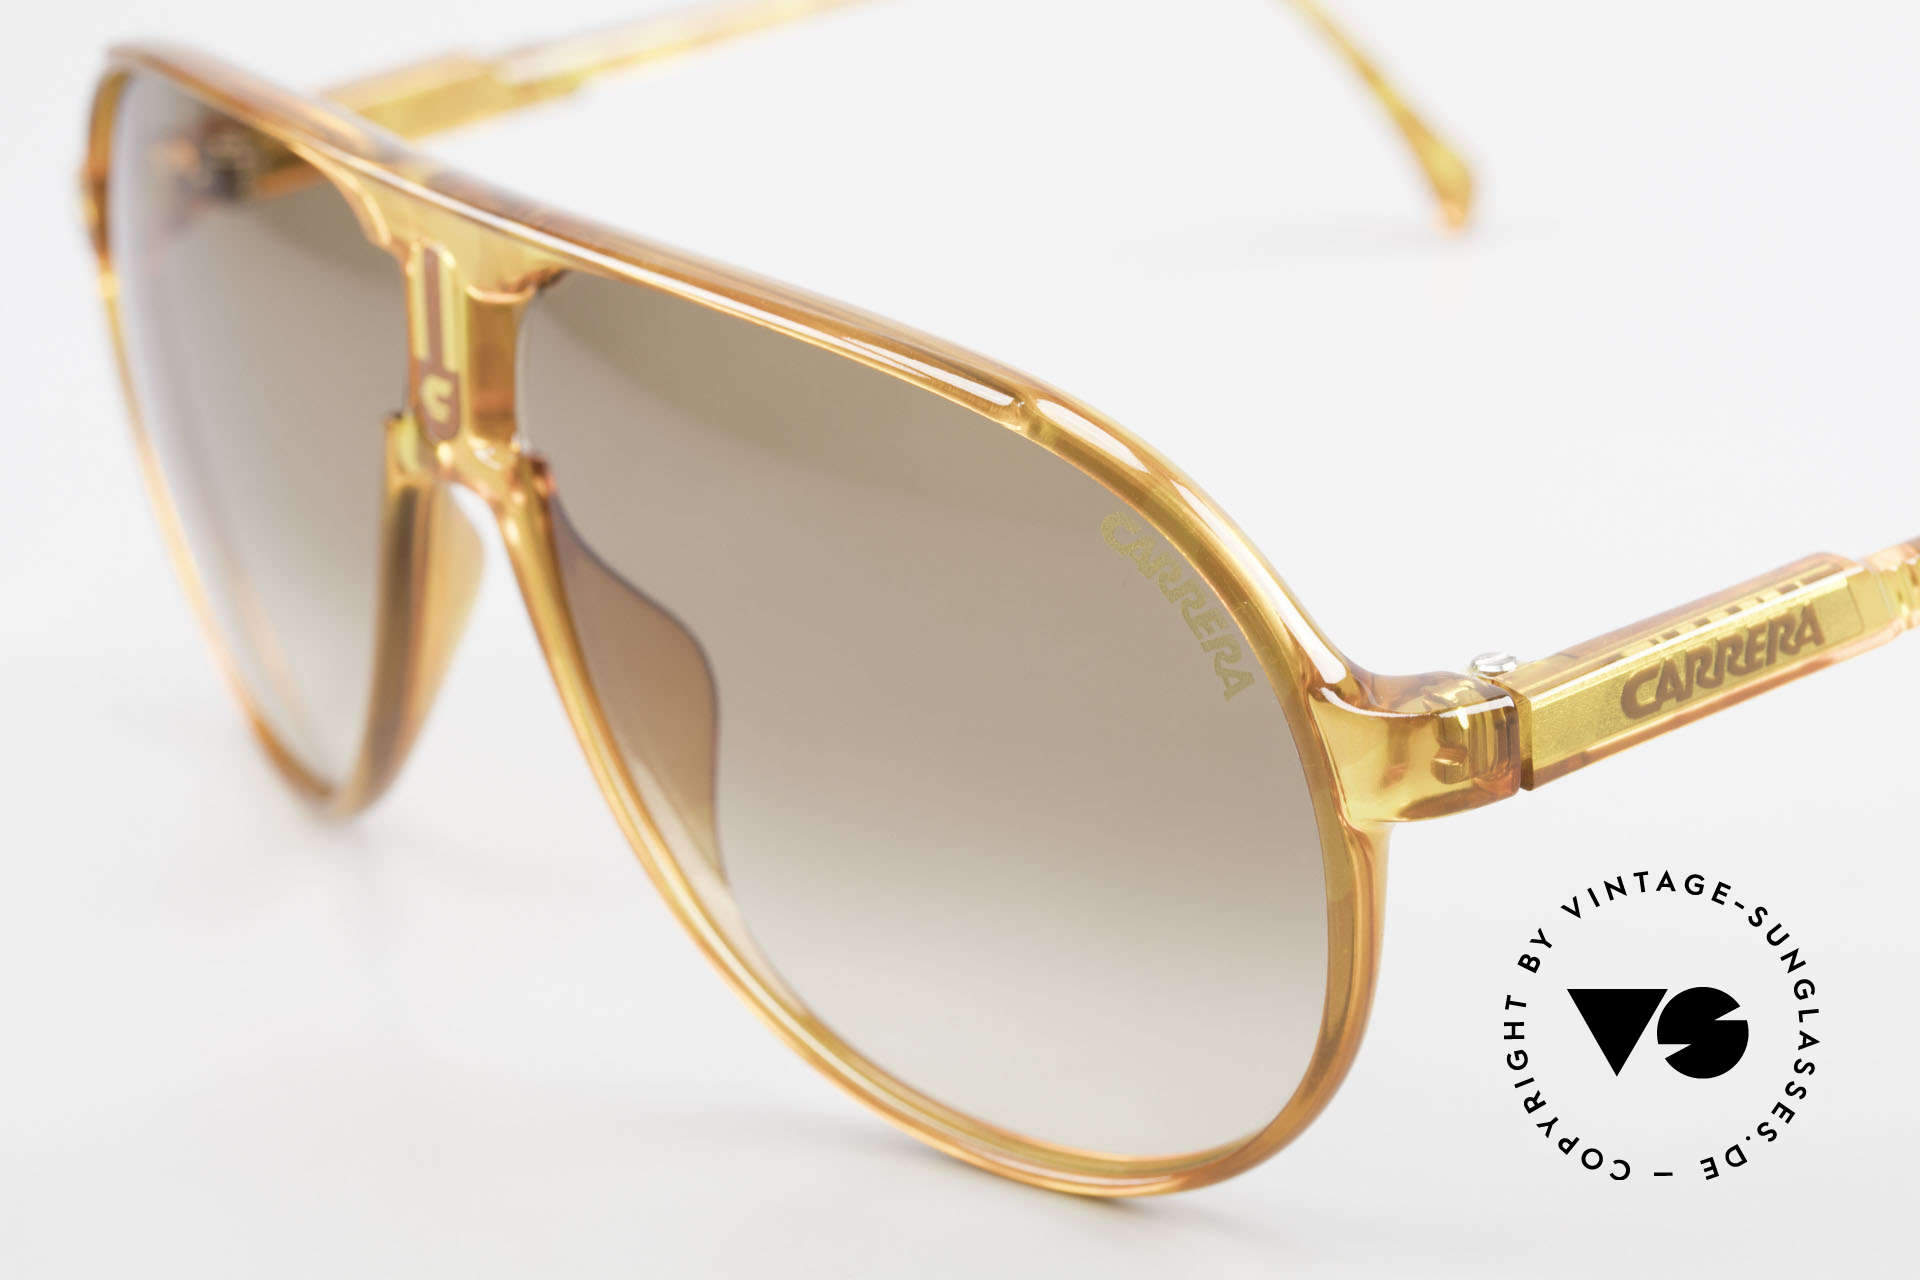 Carrera 5407 80's Sports Aviator Sunglasses, built to last and made for many sport activities!, Made for Men